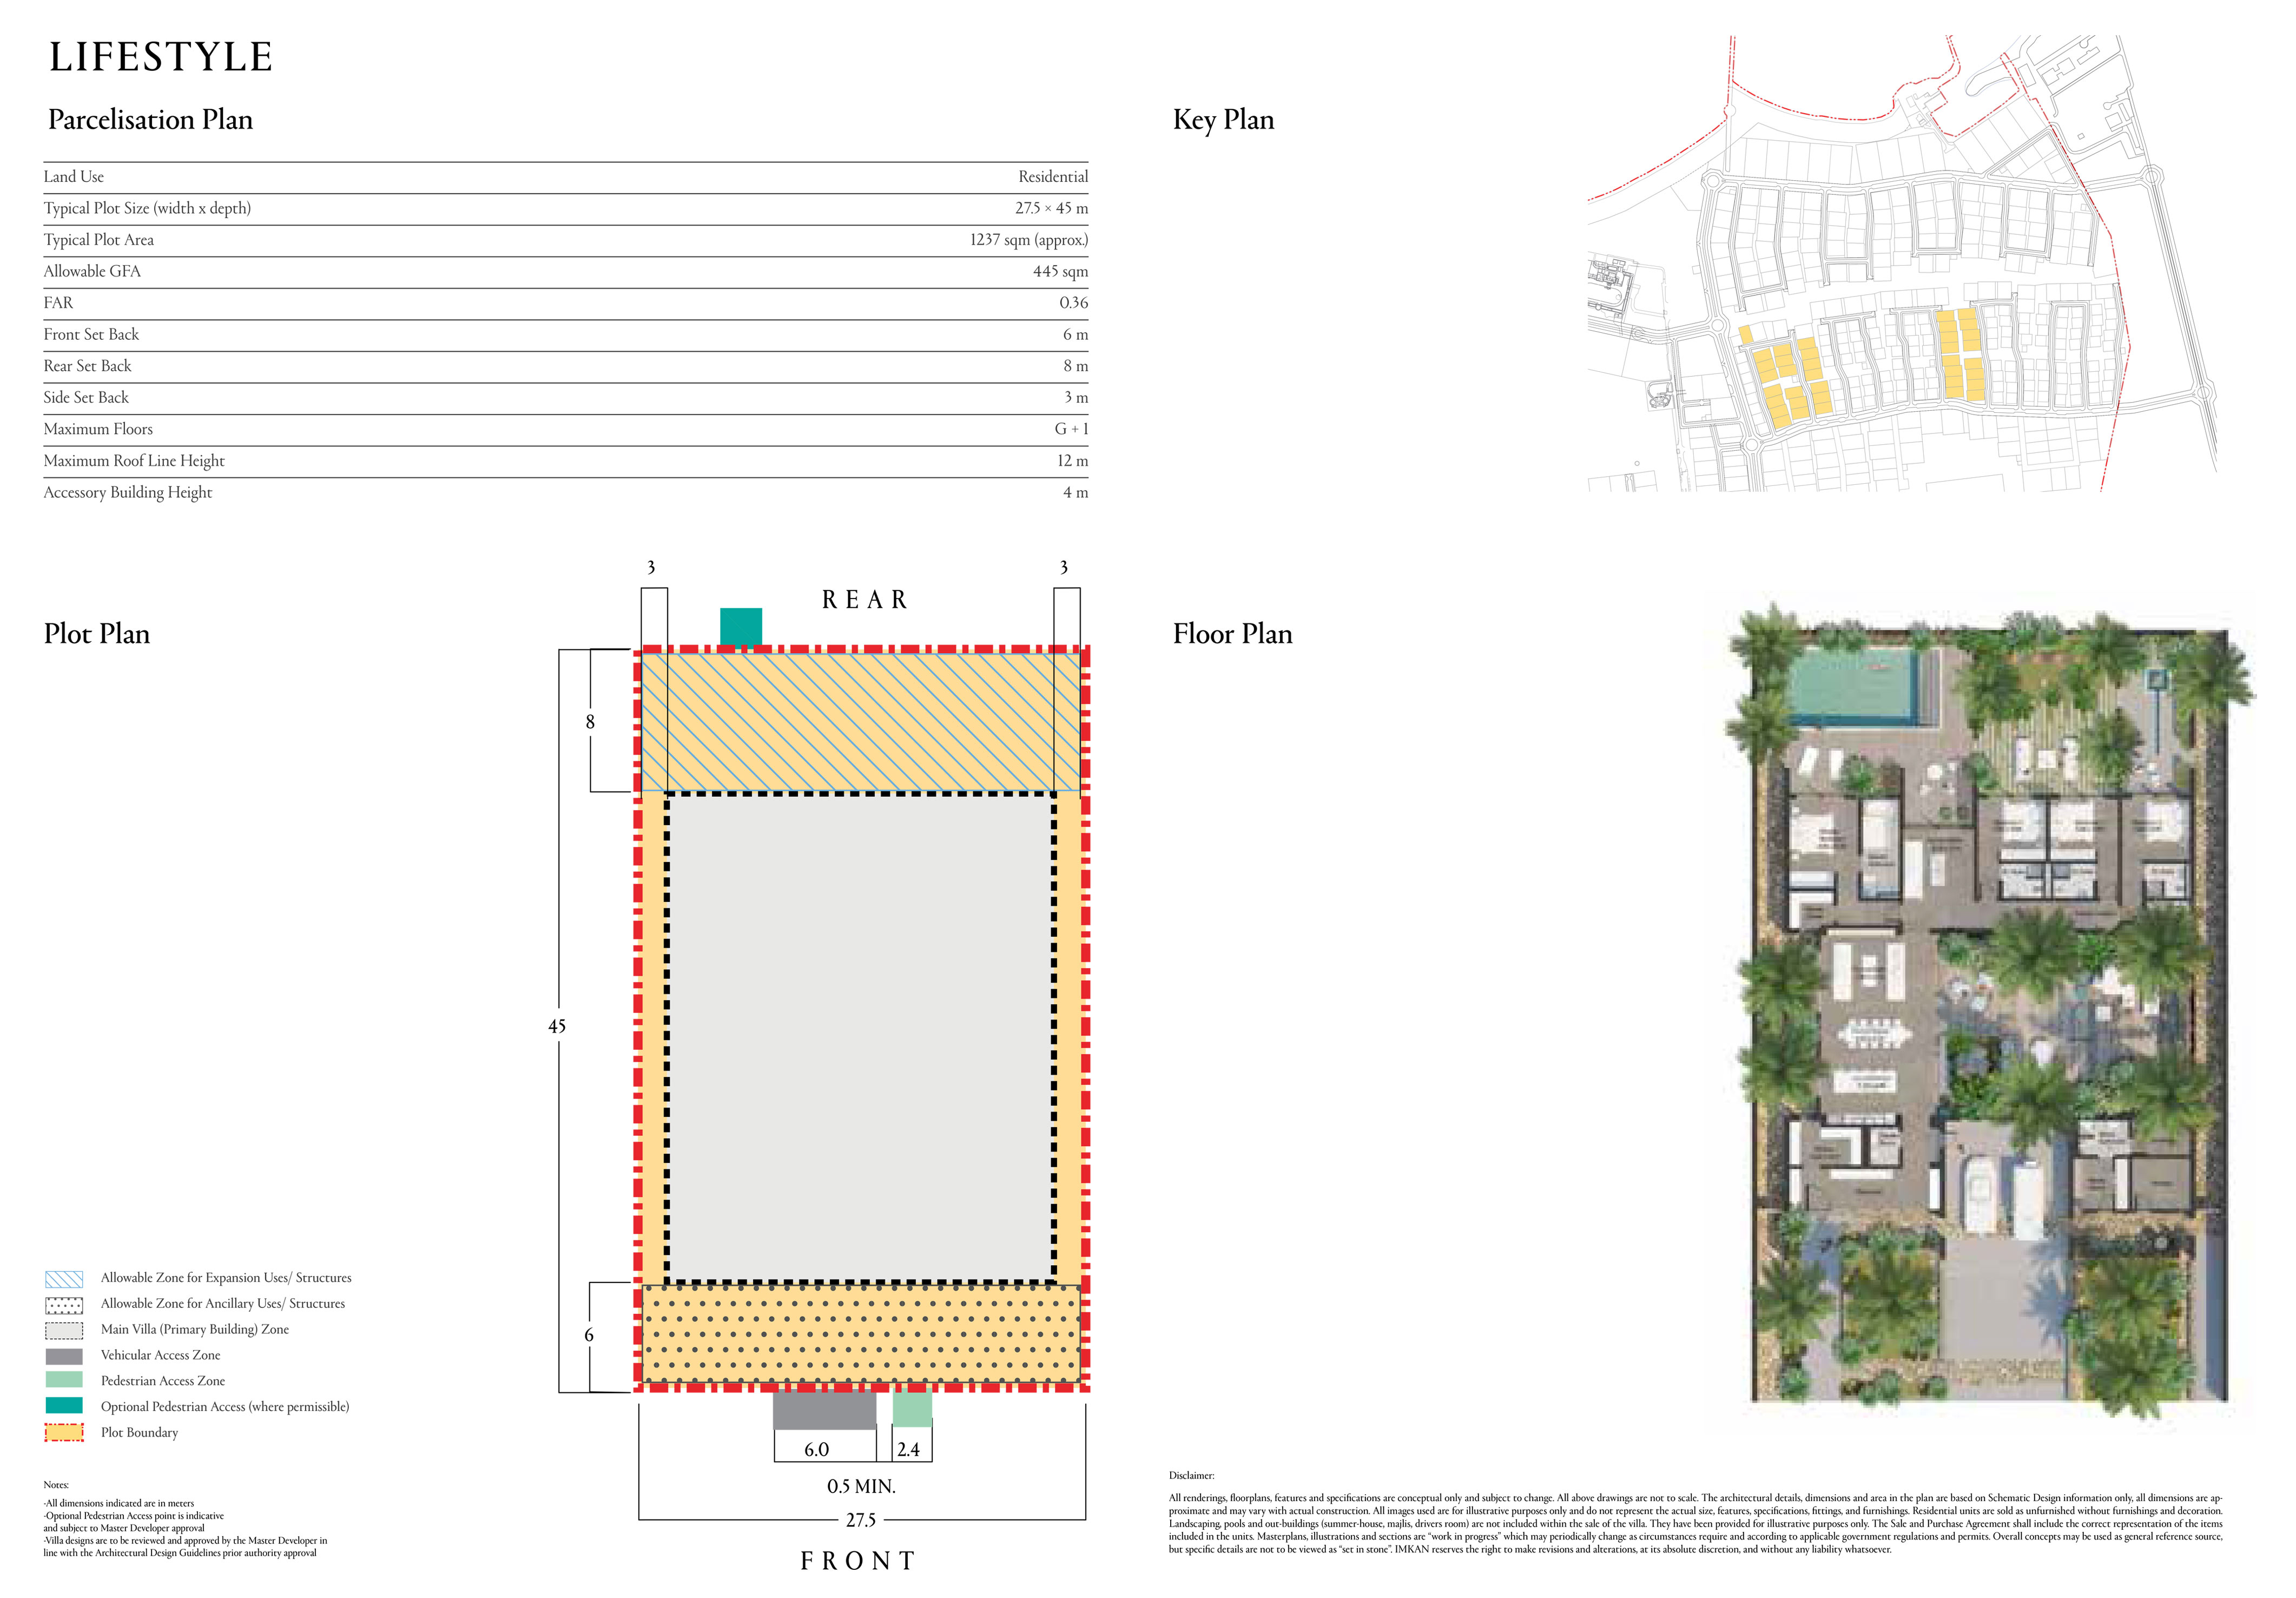 Typical Plot Size 1237 sqm (27.5x 45m)